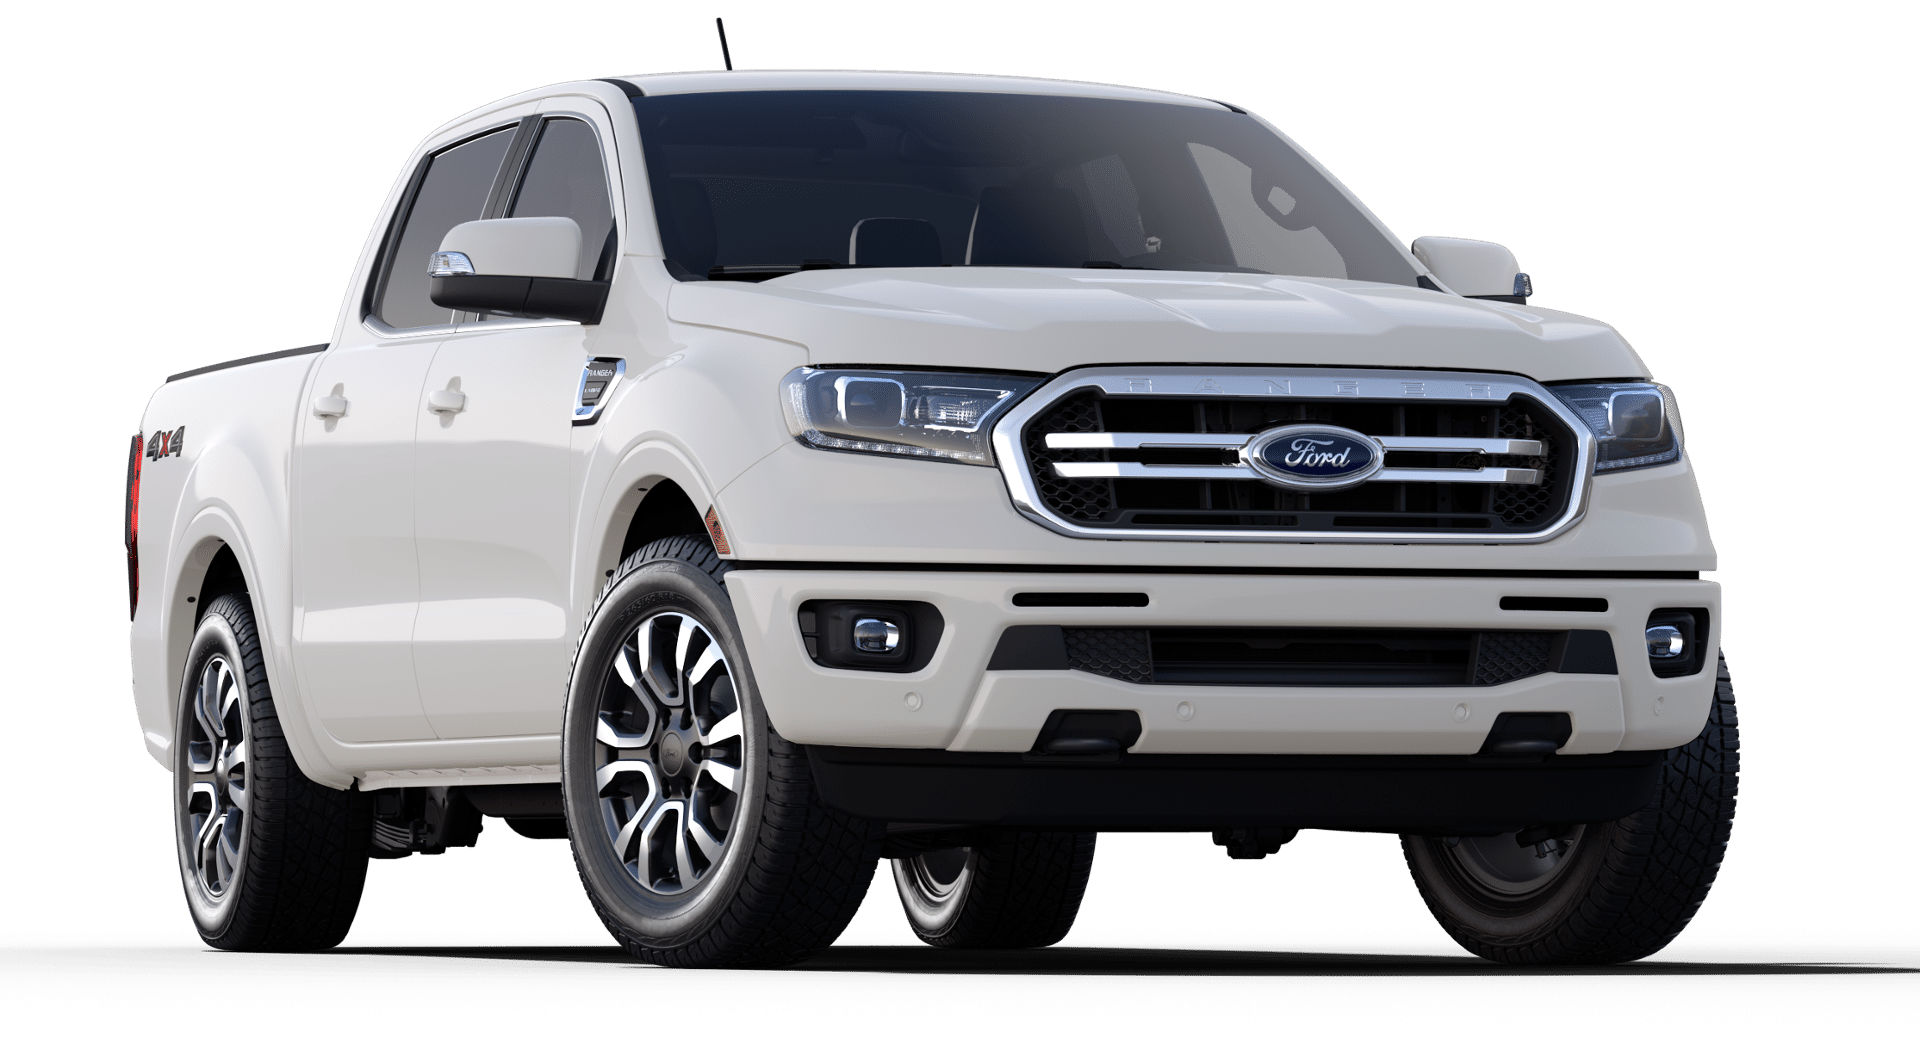 2019 Ford Ranger Lariat Supercrew Oxford White 2019 Ford Ranger Ford Ranger Ford Trucks F150